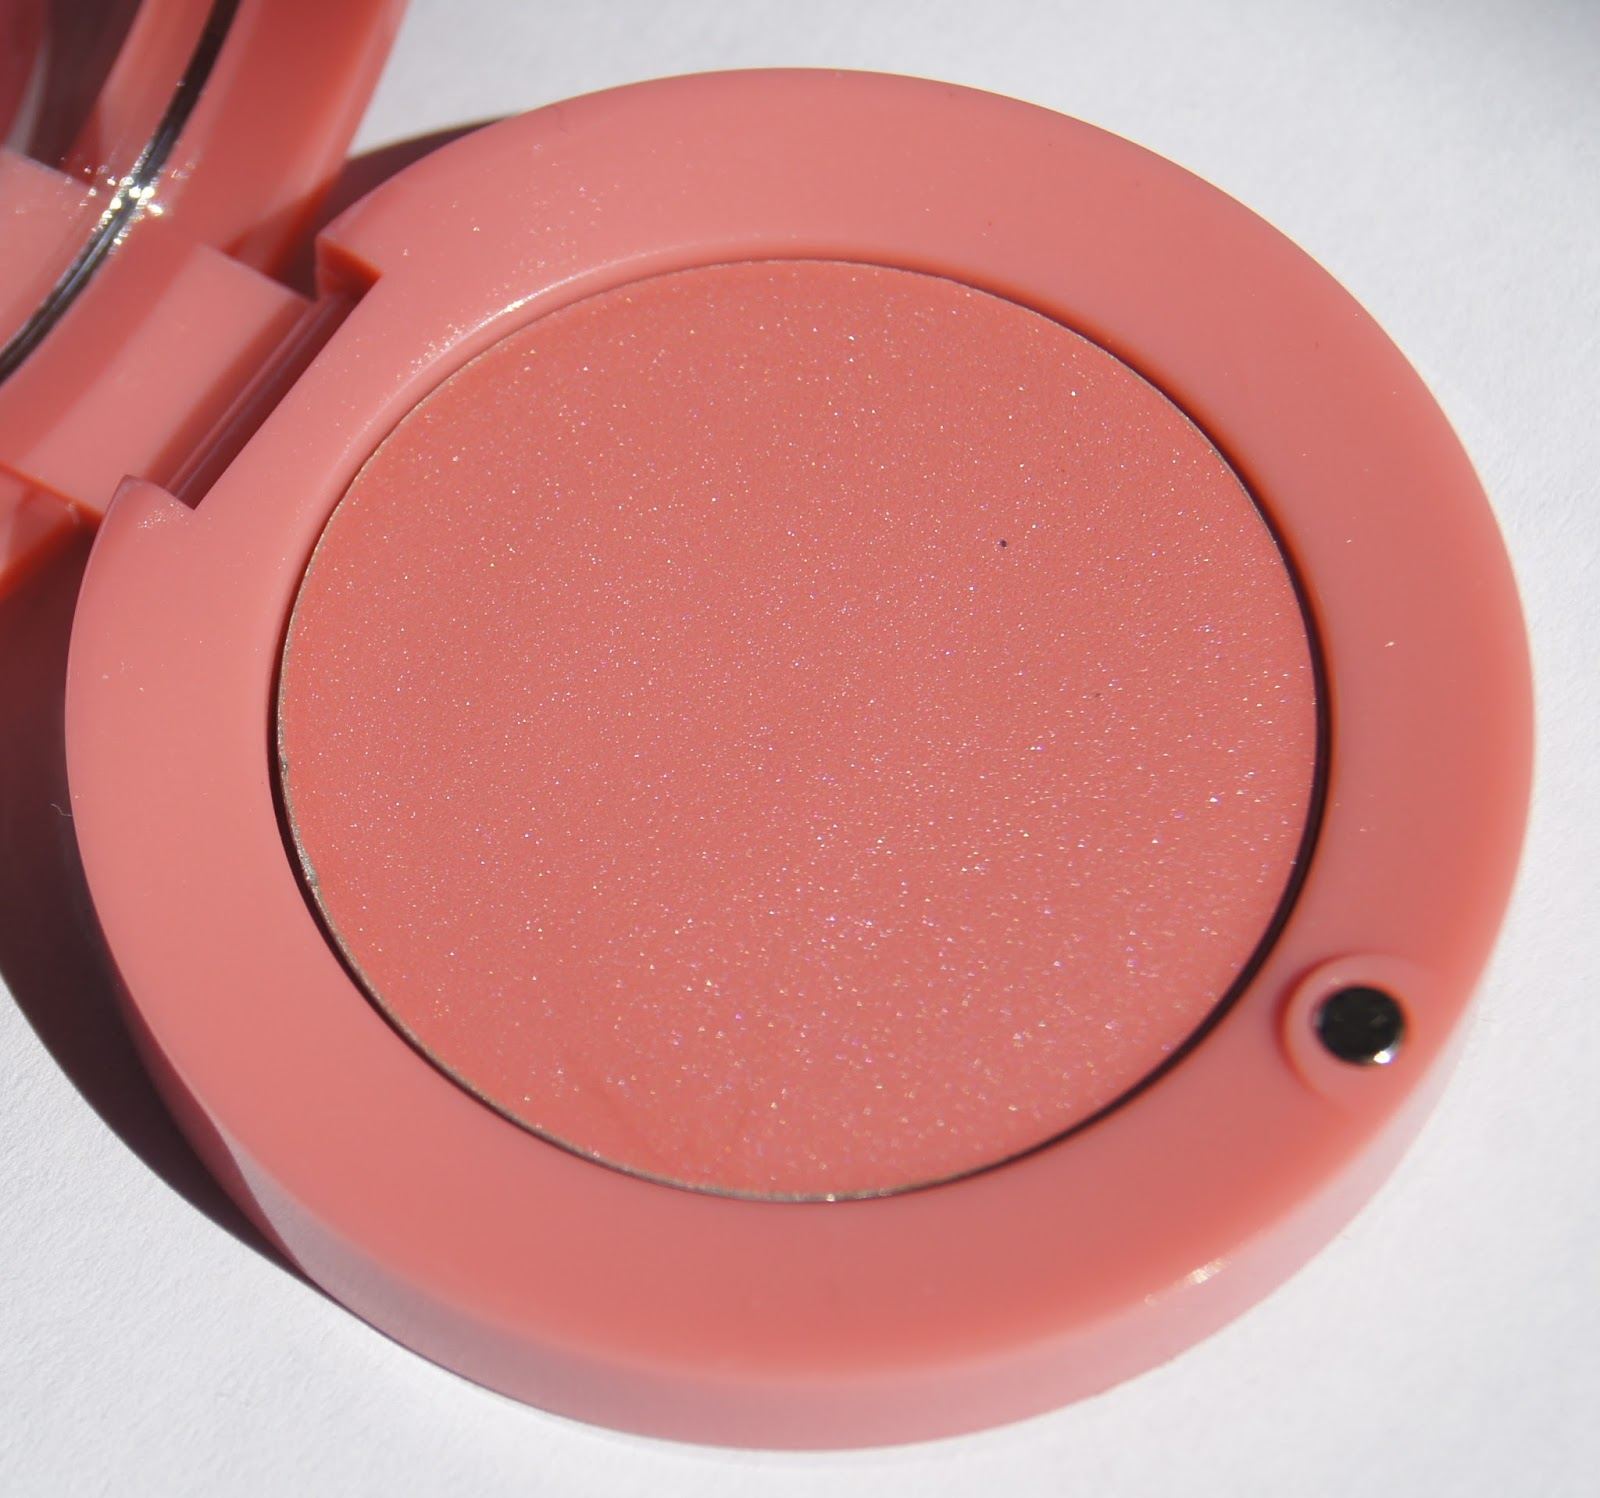 bourgeois little round pot cream blushes 03 rose tender review